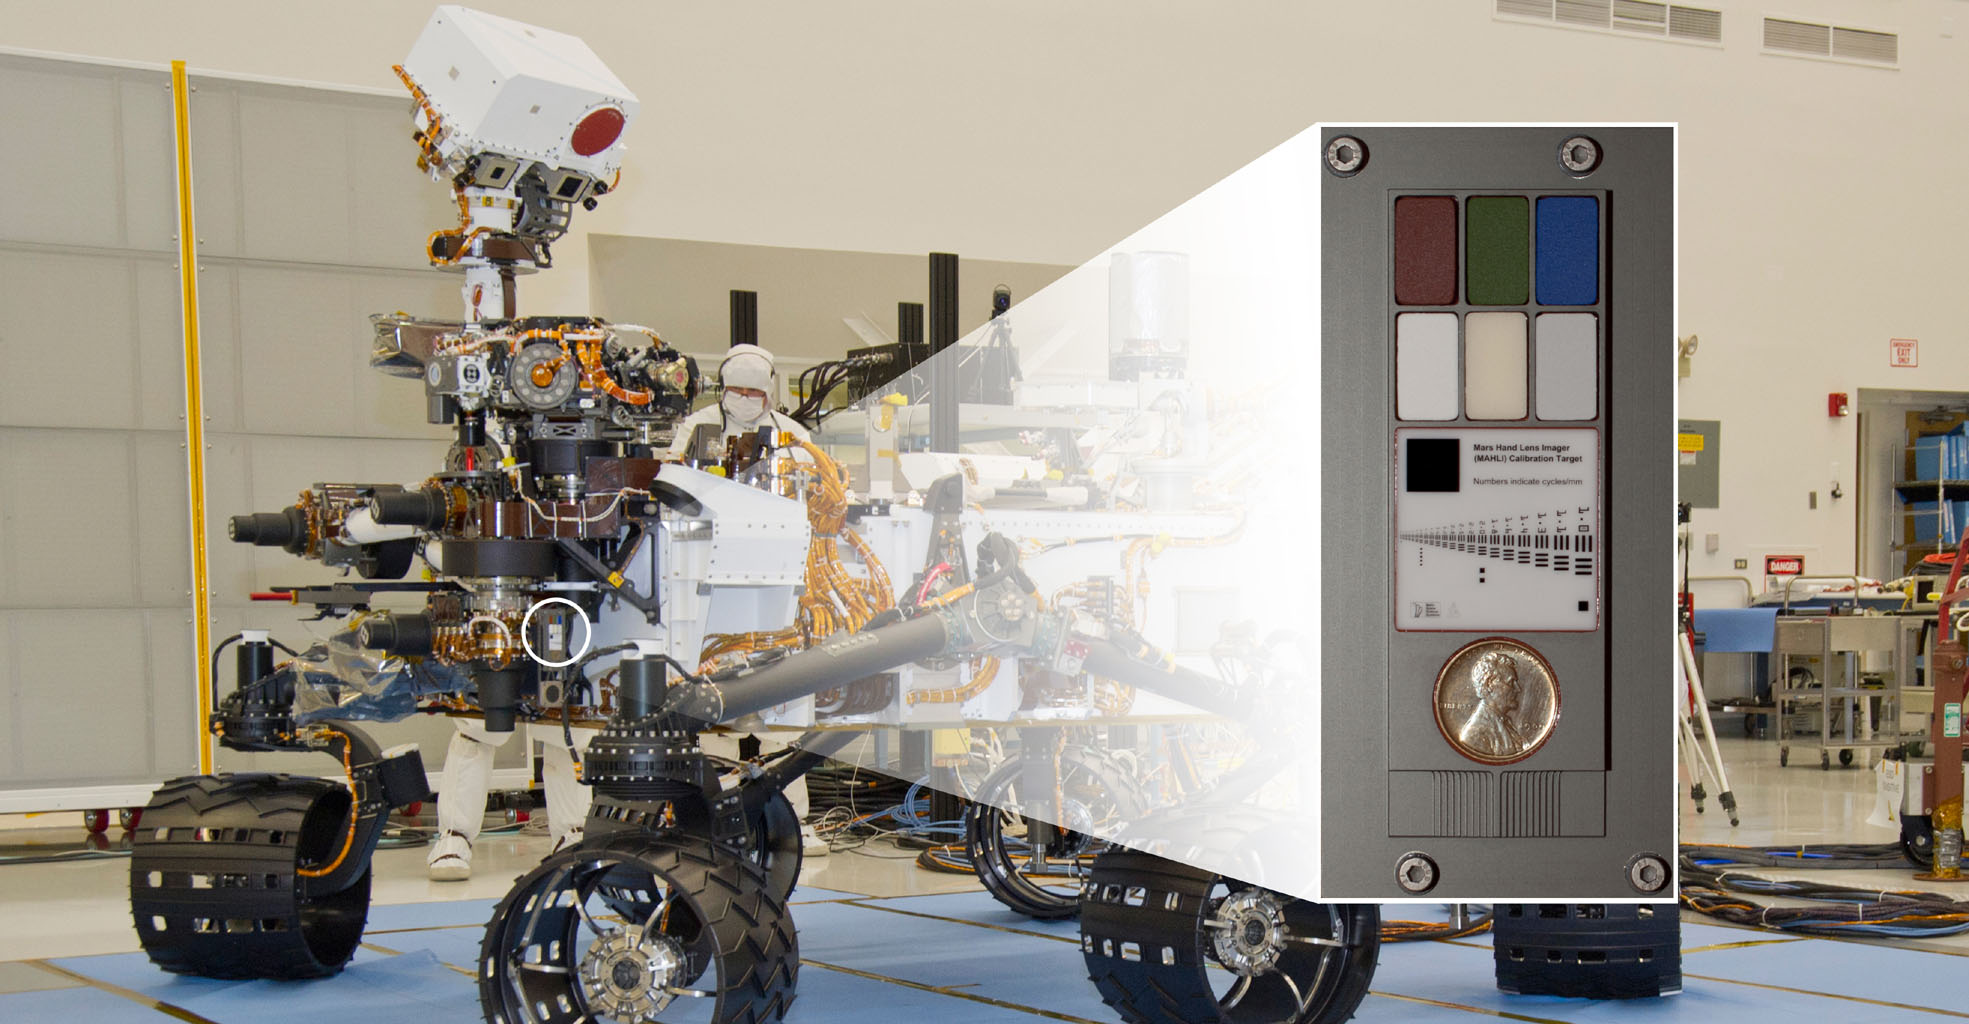 The Mars Hand Lens Imager (MAHLI) camera at the end of the robotic arm of NASA's Curiosity rover will use a calibration target attached to a shoulder joint of the arm.